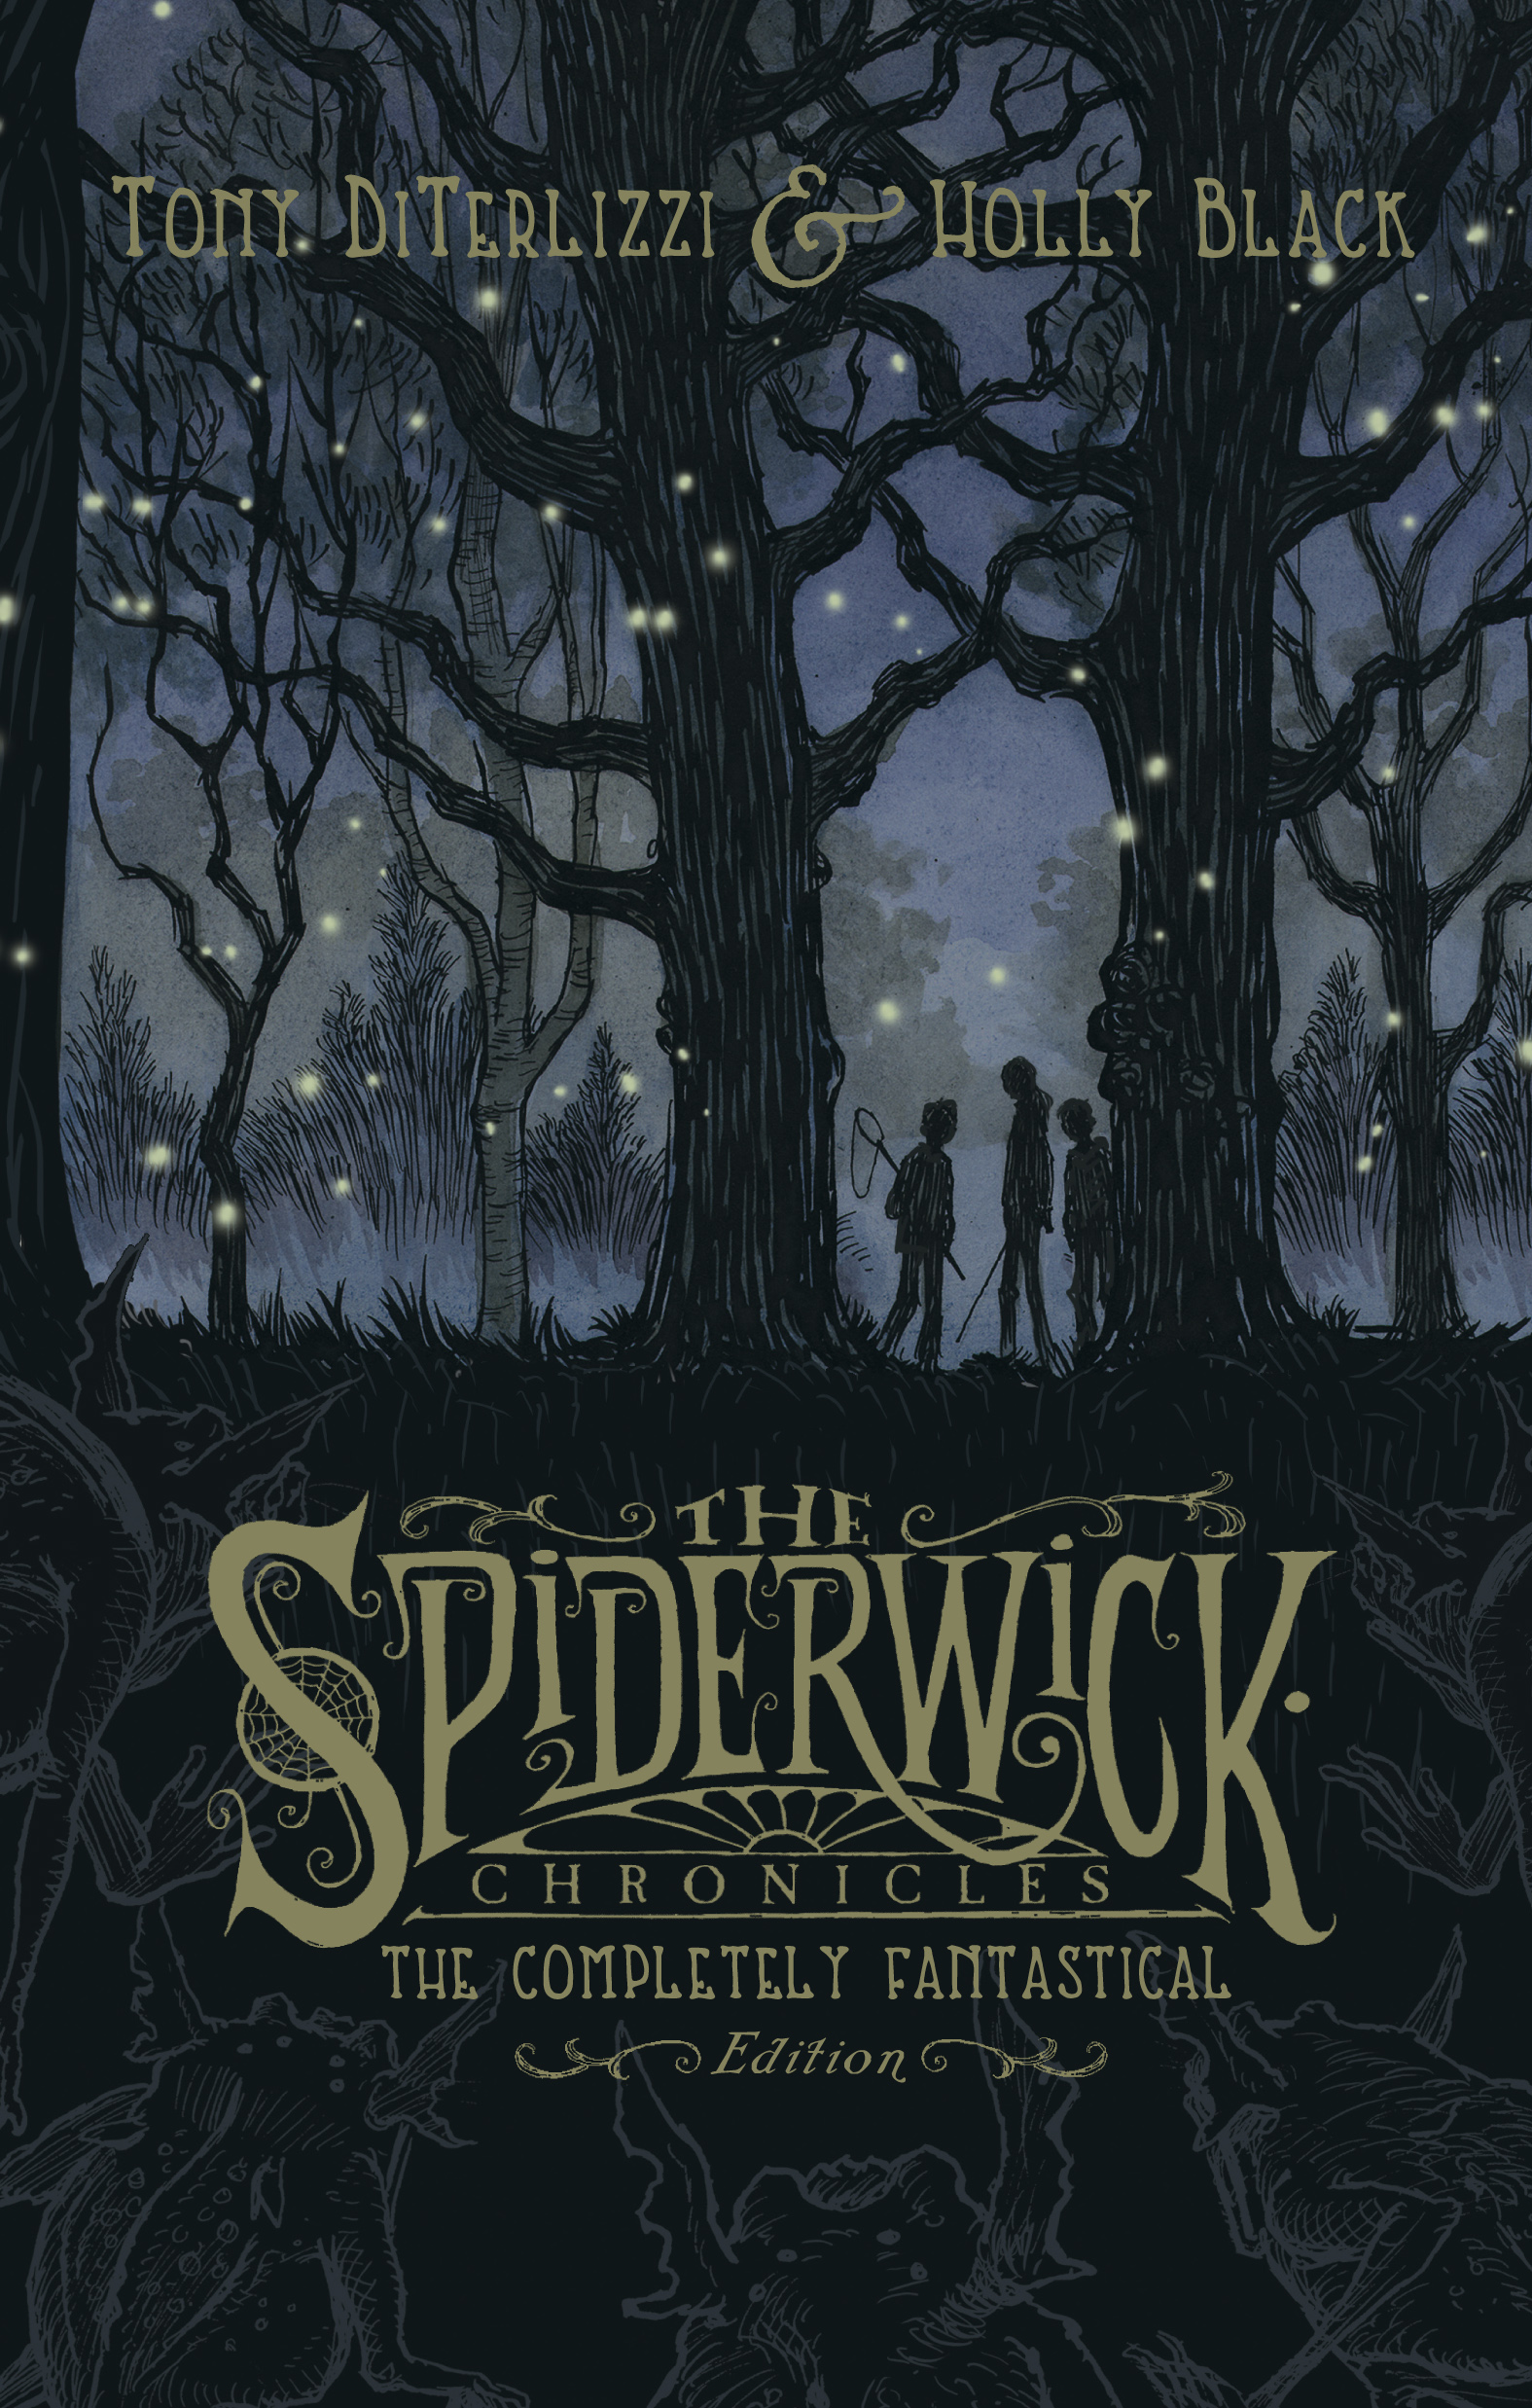 The Spiderwick Chronicles Book By Tony Diterlizzi Holly